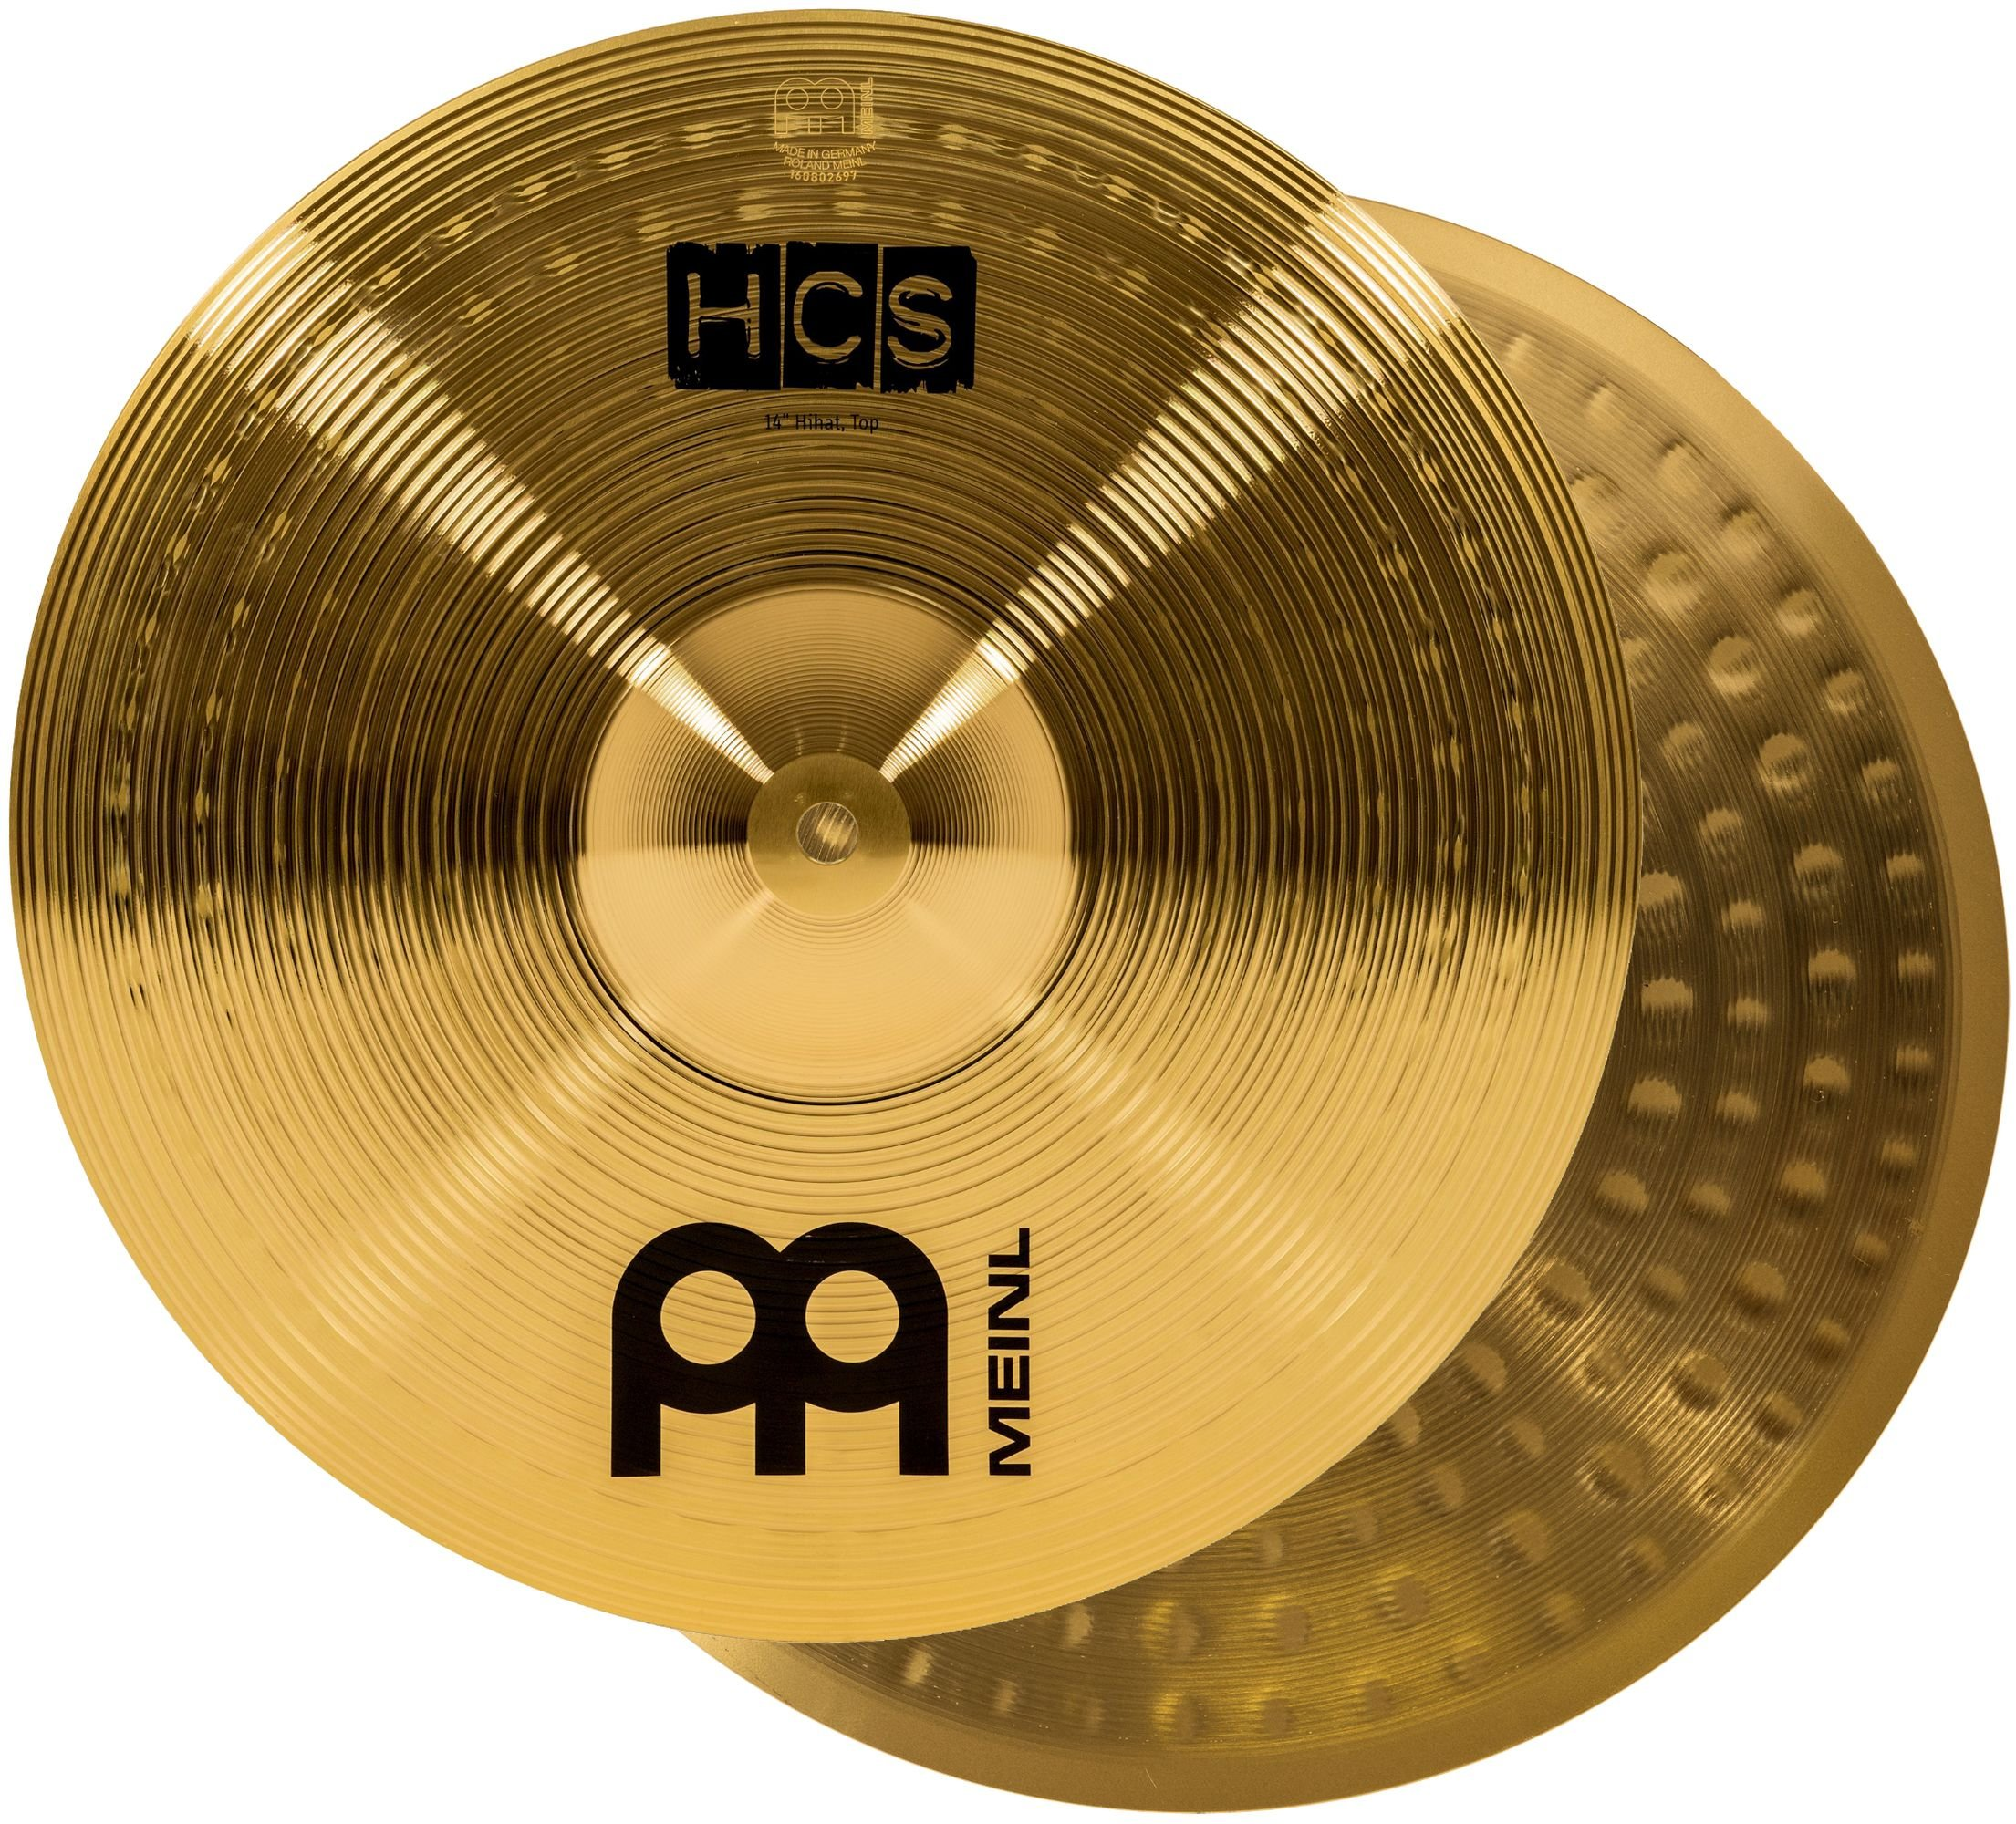 Meinl 14'' Hihat (Hi Hat) Cymbal Pair - HCS Traditional Finish Brass for Drum Set, Made In Germany, 2-YEAR WARRANTY (HCS14H) by Meinl Cymbals